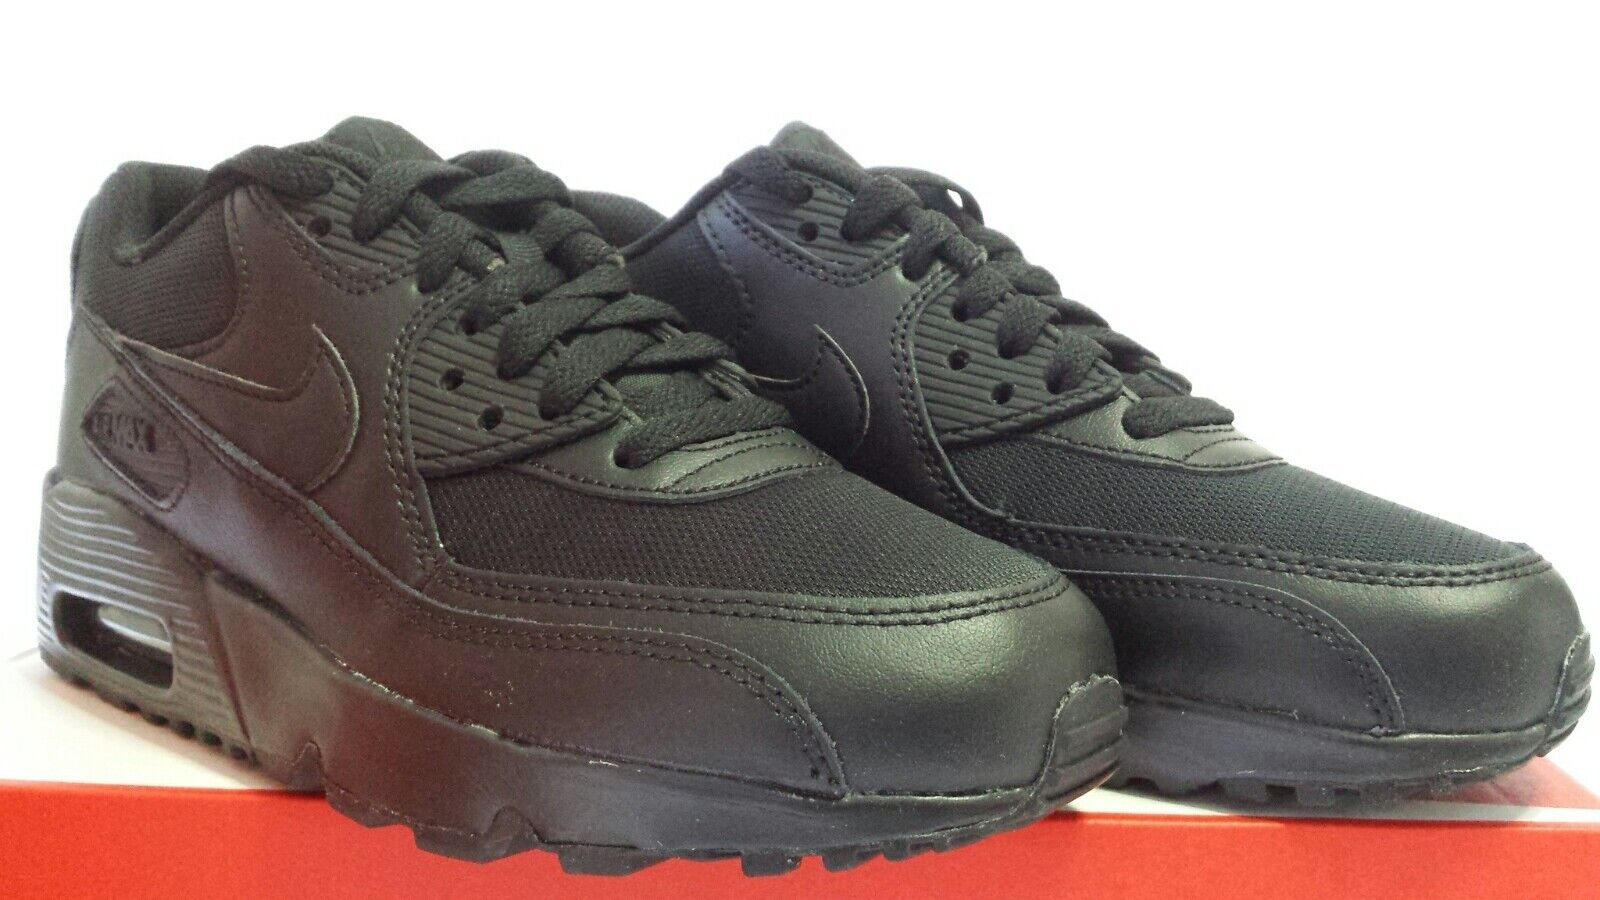 NIKE AIR MAX 90 97 NOIR TOTAL APPEL BLACK N.36,5 PRIX SURBAISSéE APPEL TOTAL e7ee60